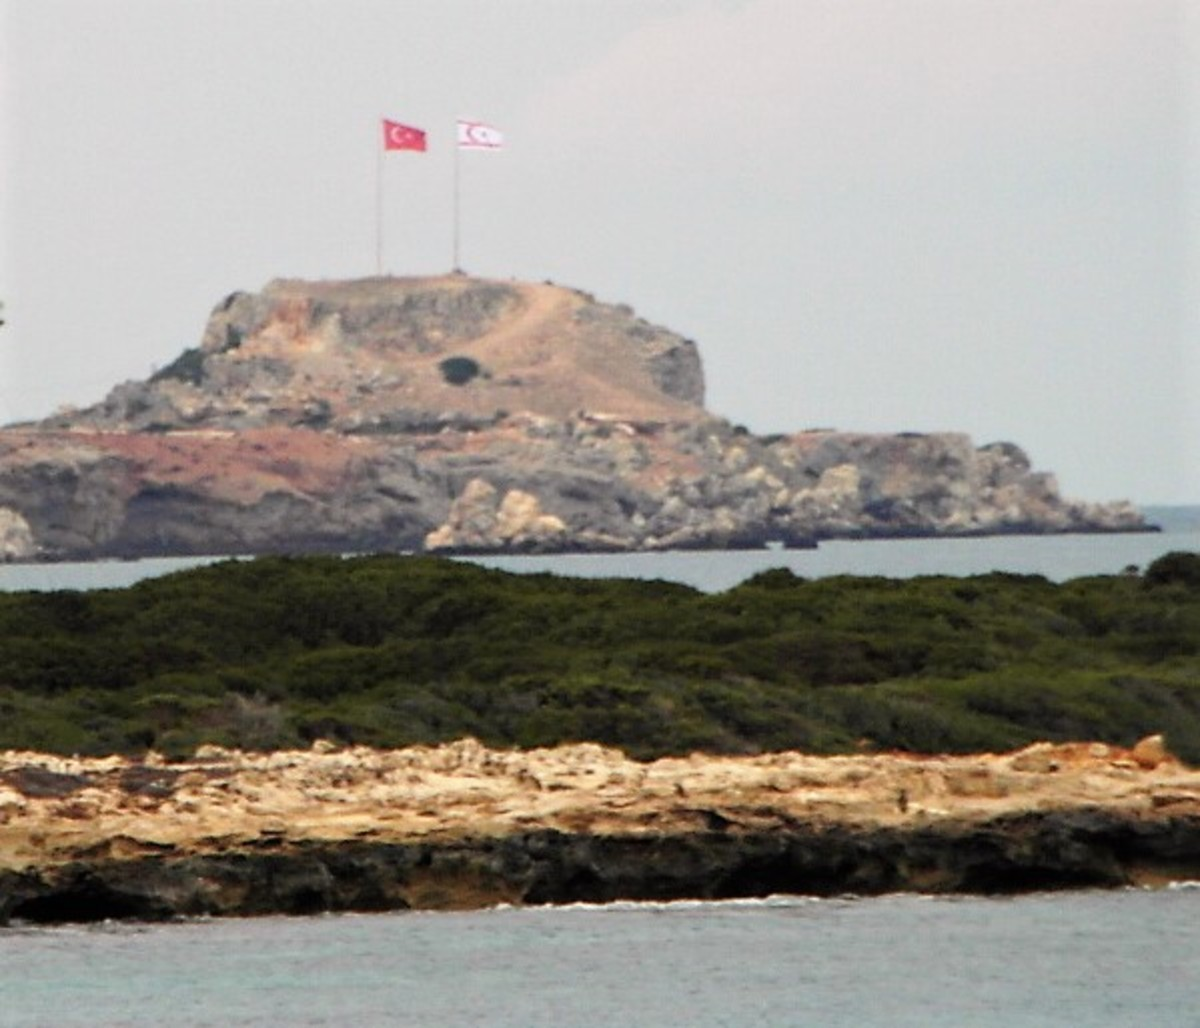 The flags of Northern Cyprus fly at the end of the Karpaz Peninsula.